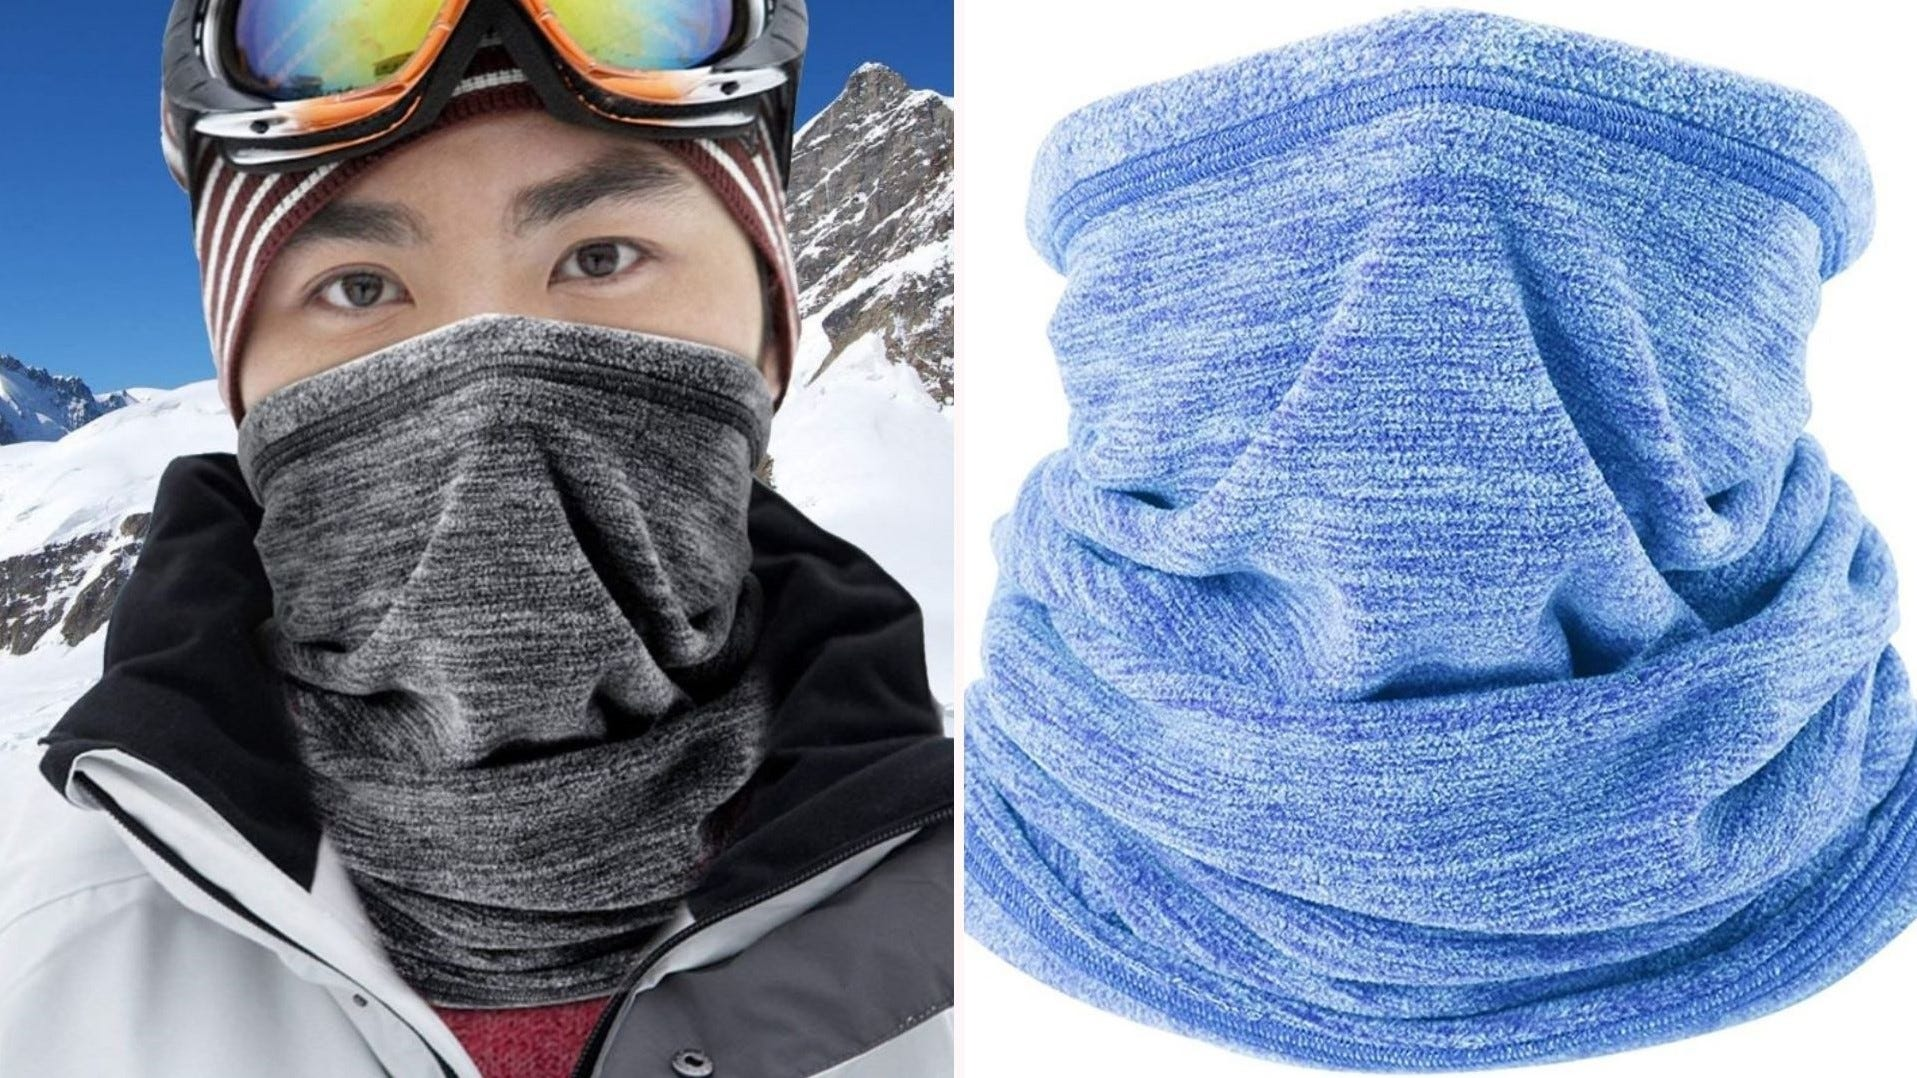 A man wearing a gray gaiter face mask outdoors and a sky blue gaiter.